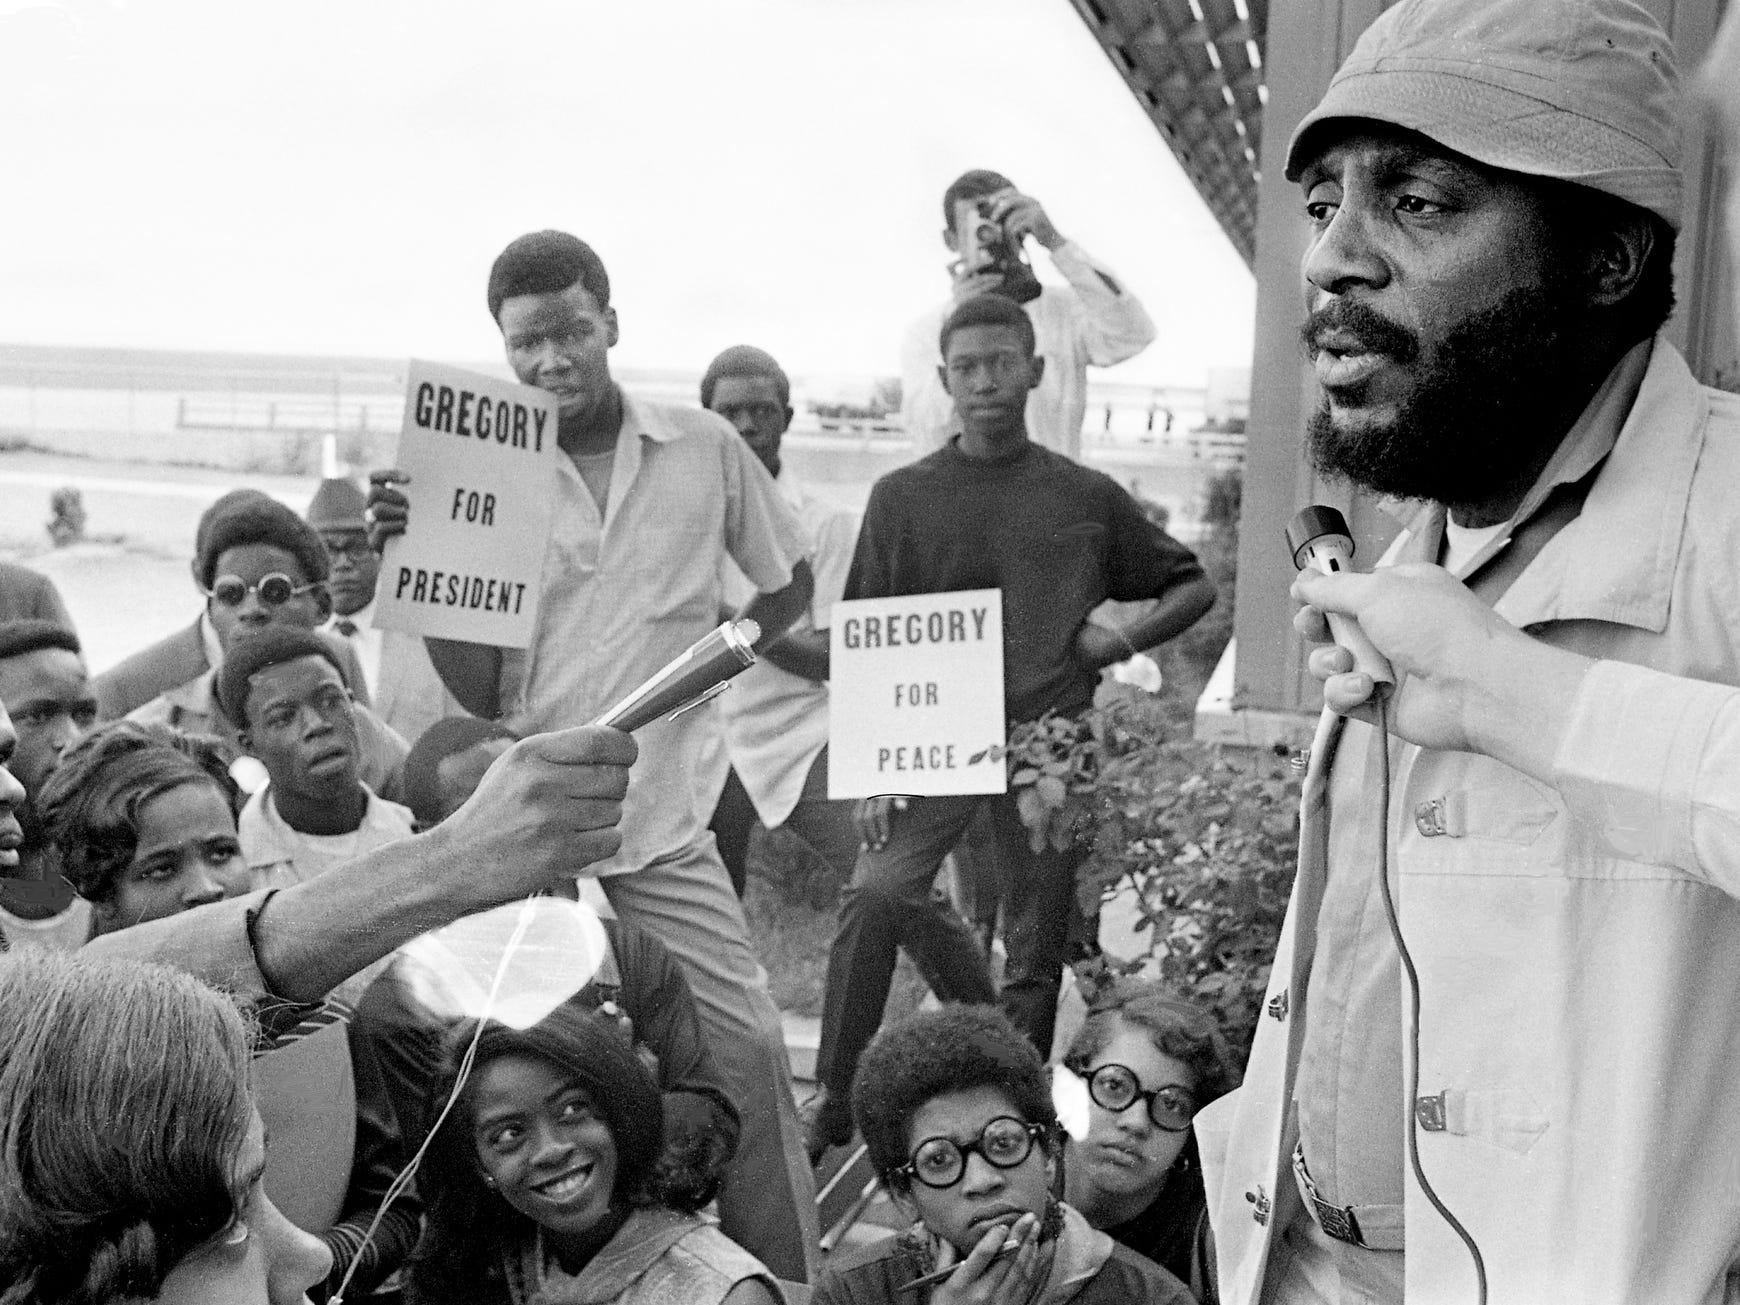 Dick Gregory, the former comedian who is now running for president, answers questions during a news conference after arriving at Nashville Municipal Airport on Sept. 27, 1968. Gregory was in town for an appearance at Vanderbilt University.